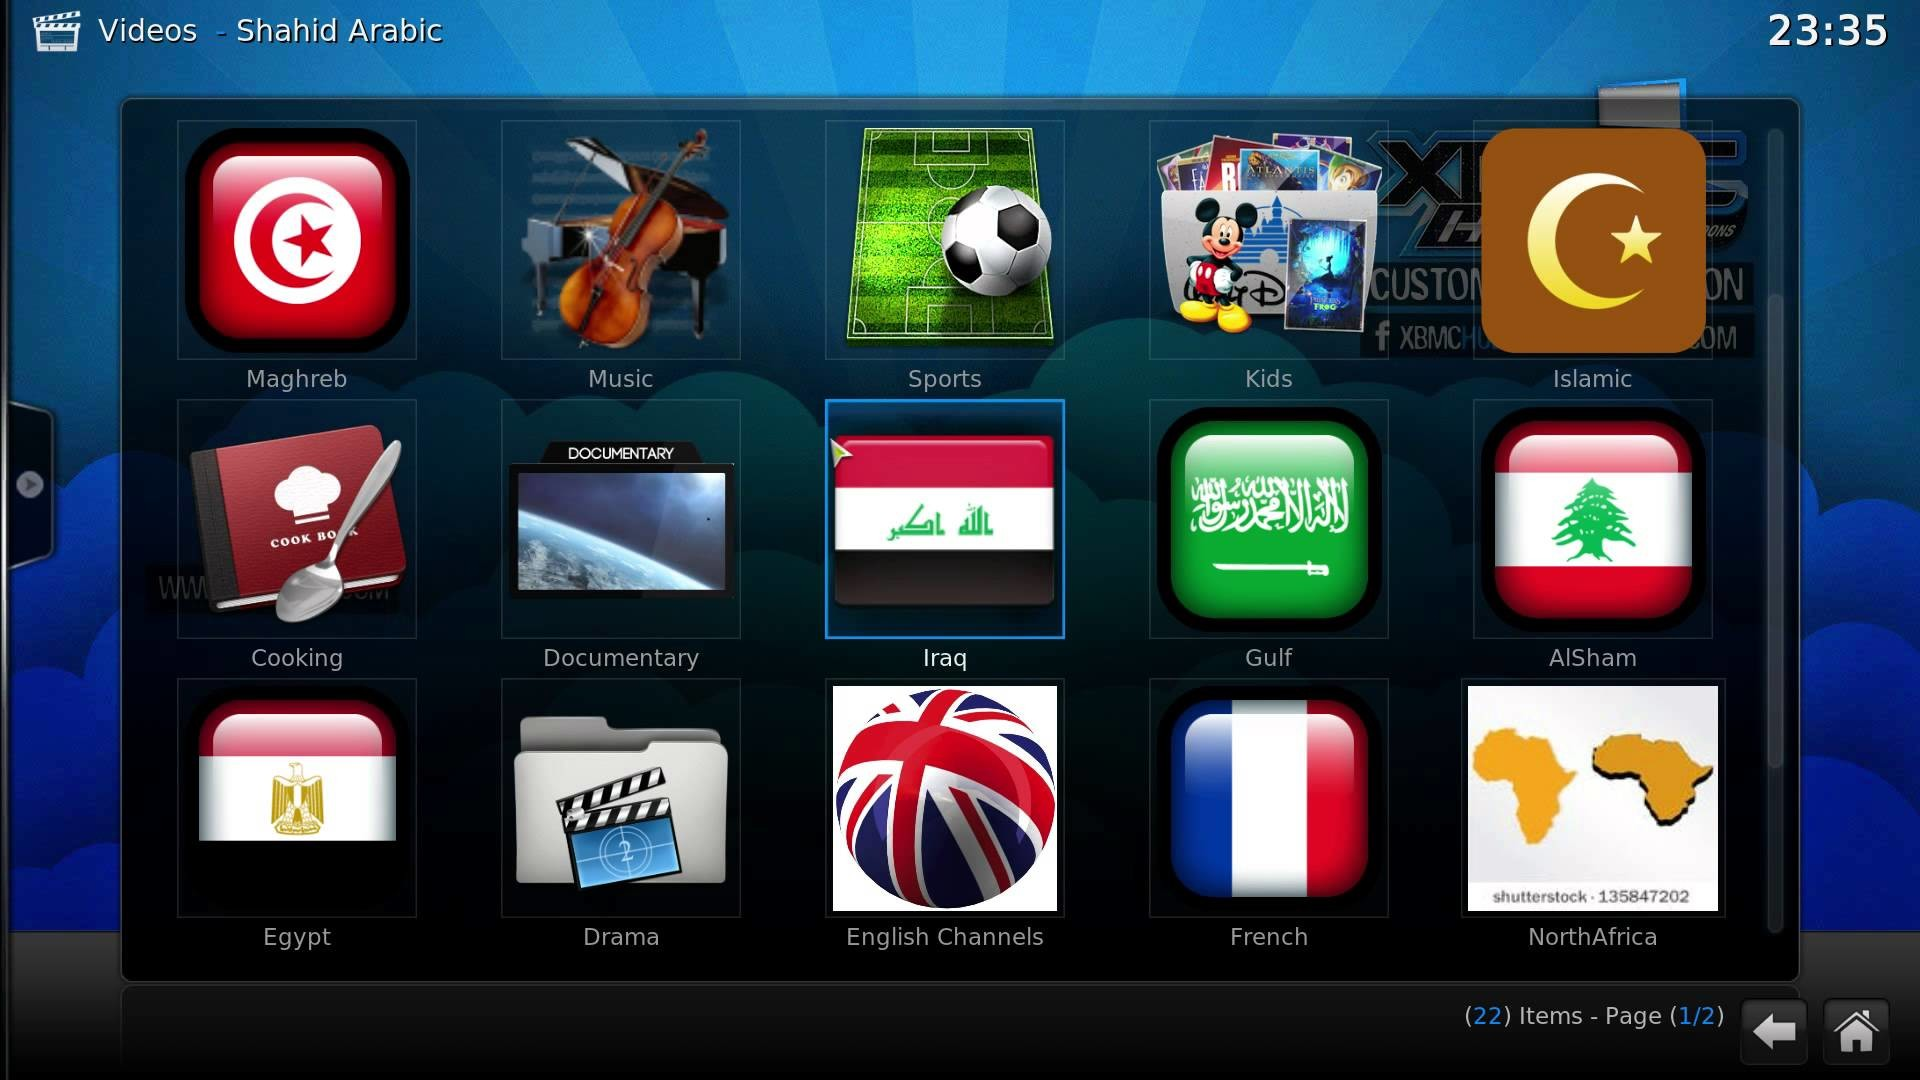 XBMC Shahid MBC net with Teledunet Live TV and Live Sports Channel (October  2014) – YouTube